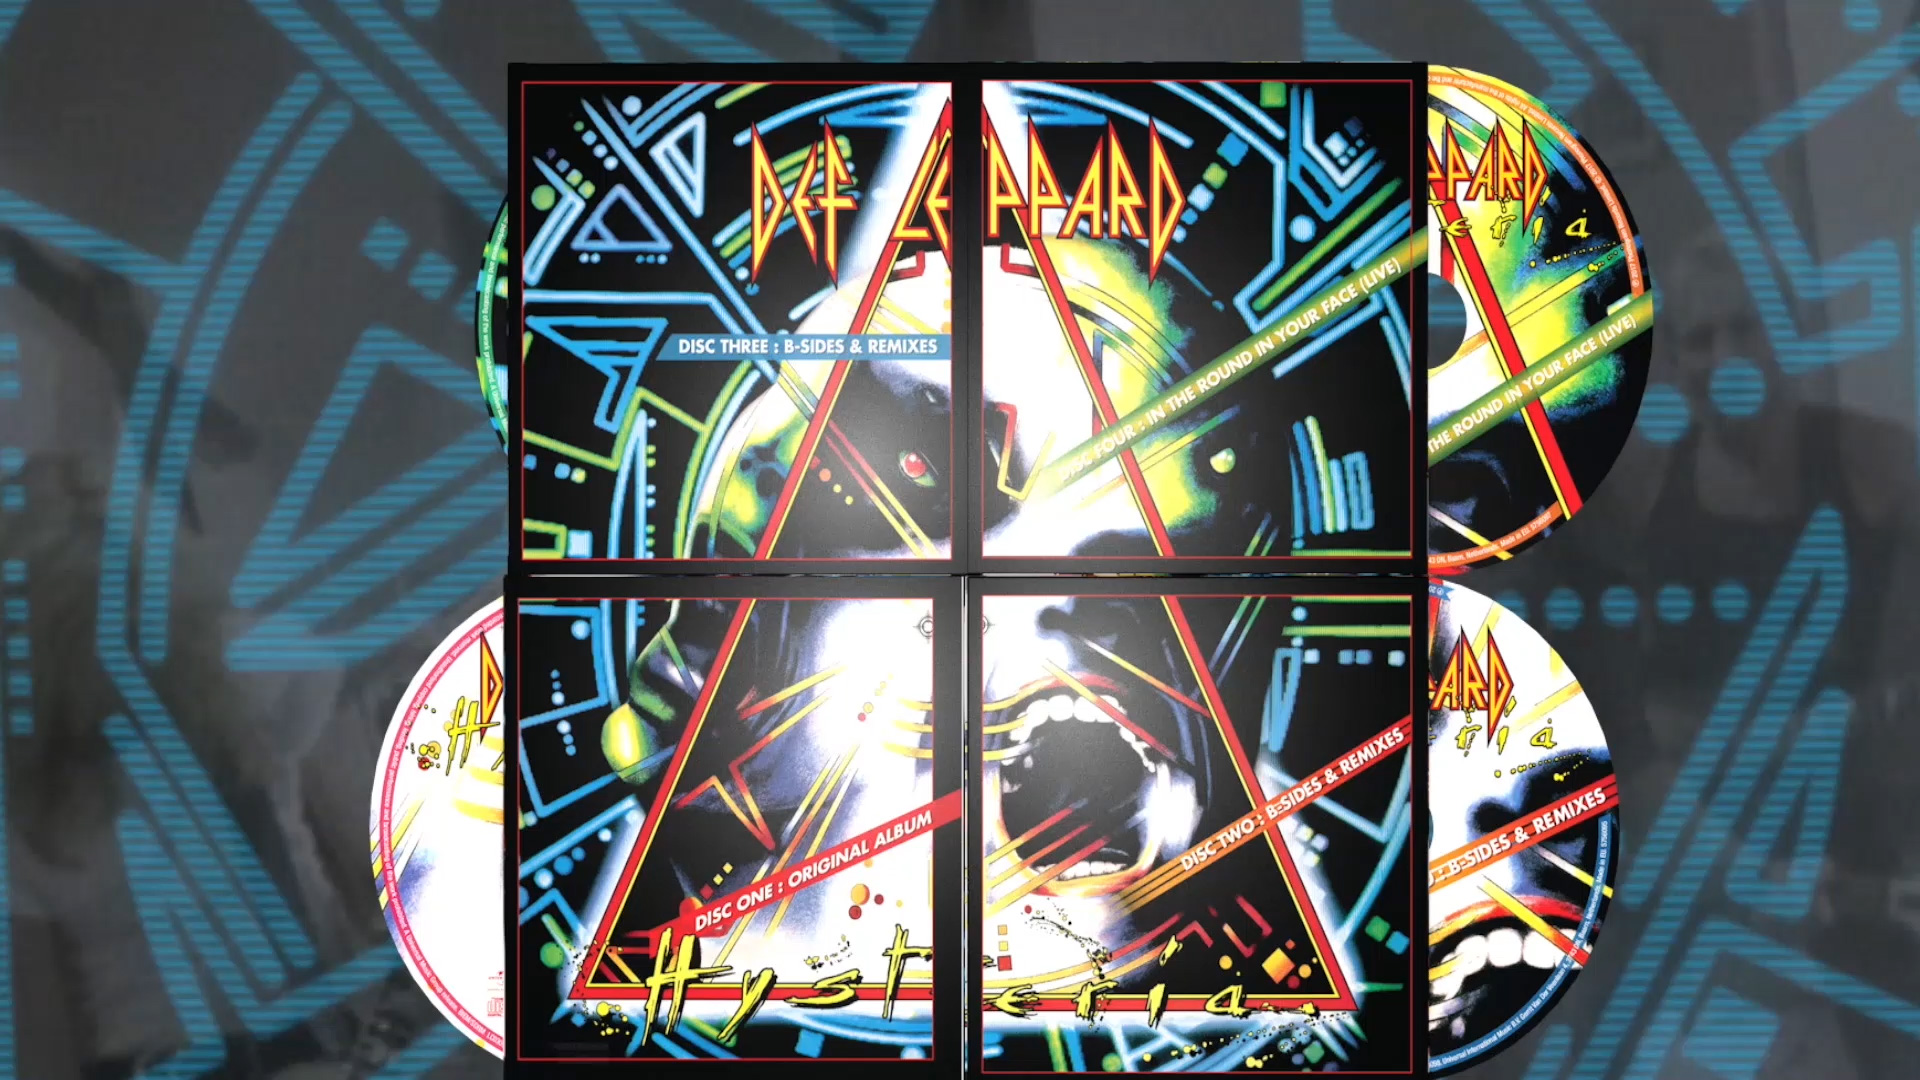 def leppard the new album